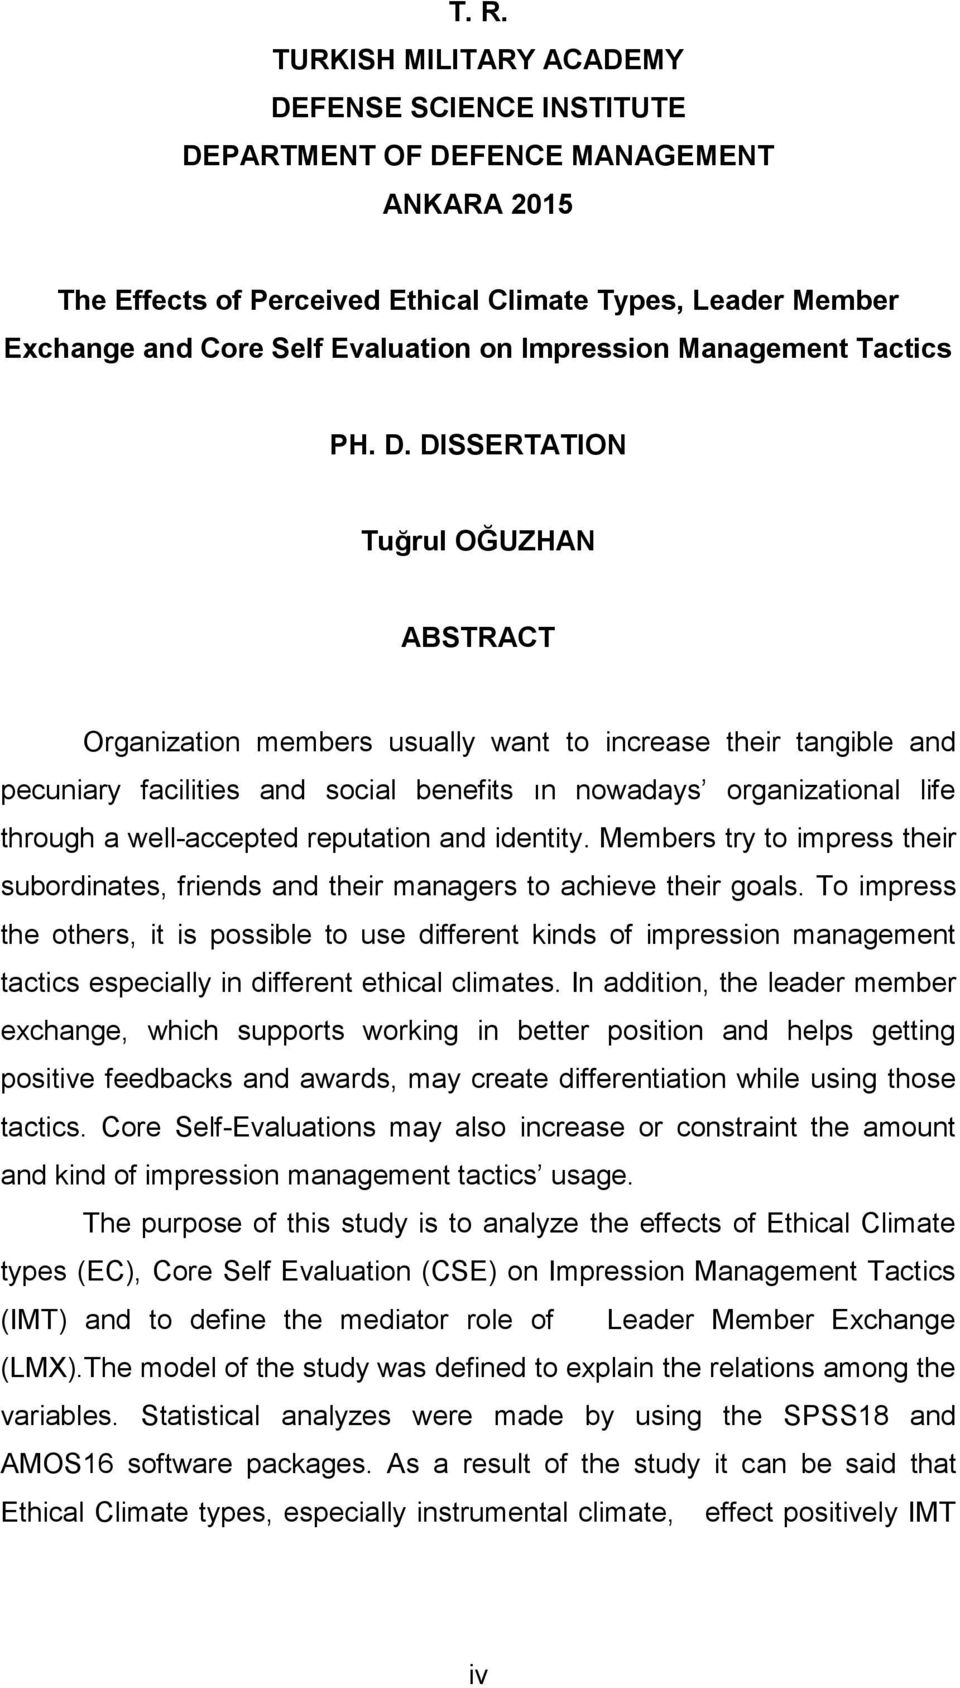 DISSERTATION Tuğrul OĞUZHAN ABSTRACT Organization members usually want to increase their tangible and pecuniary facilities and social benefits ın nowadays organizational life through a well-accepted